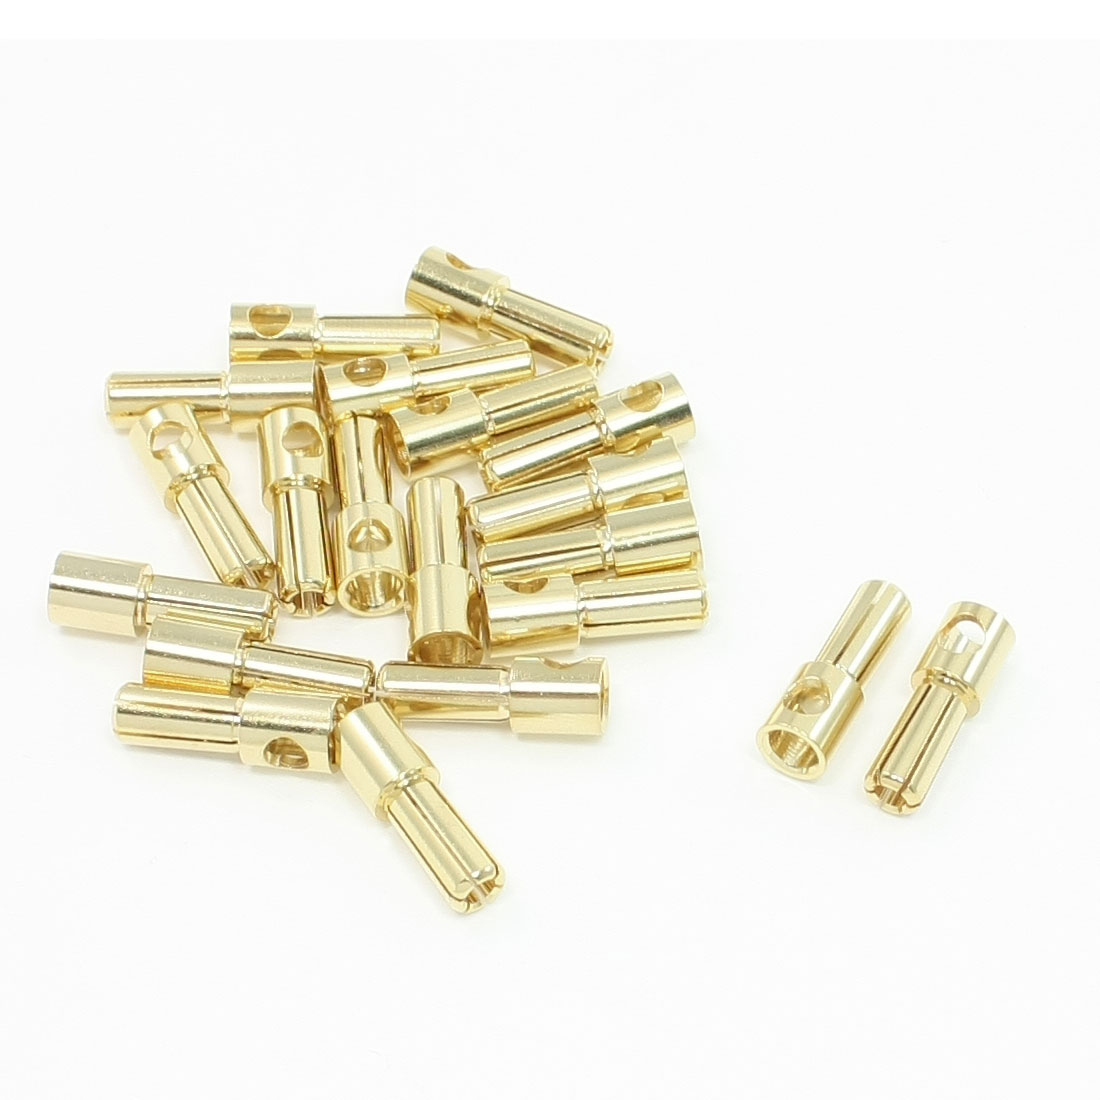 MH1158 Gold Tone Metal RC Banana Plug Connector Male 5mm 20PCS